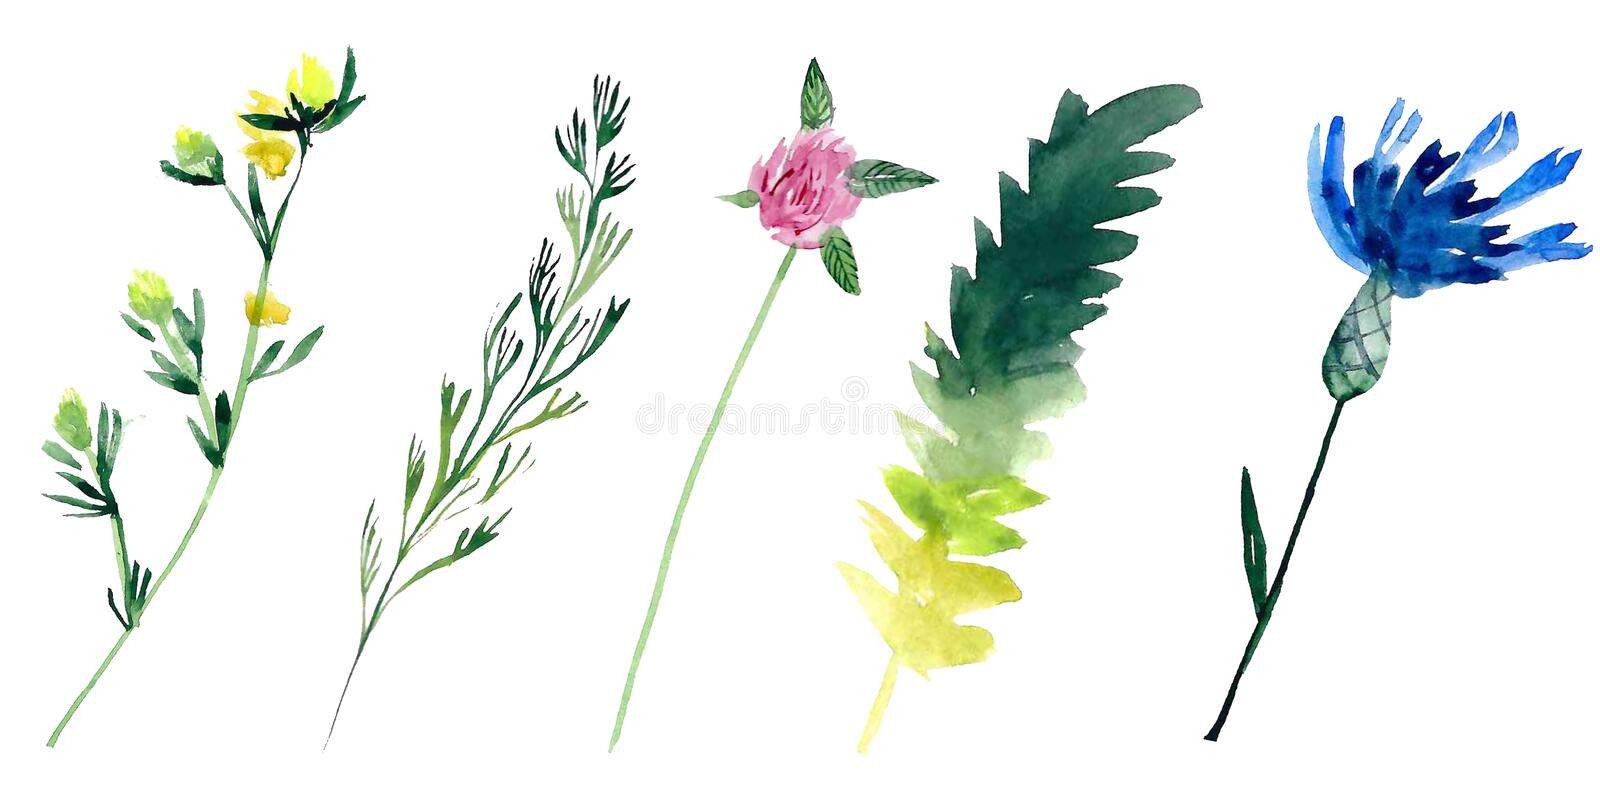 Watercolour field plants royalty free illustration